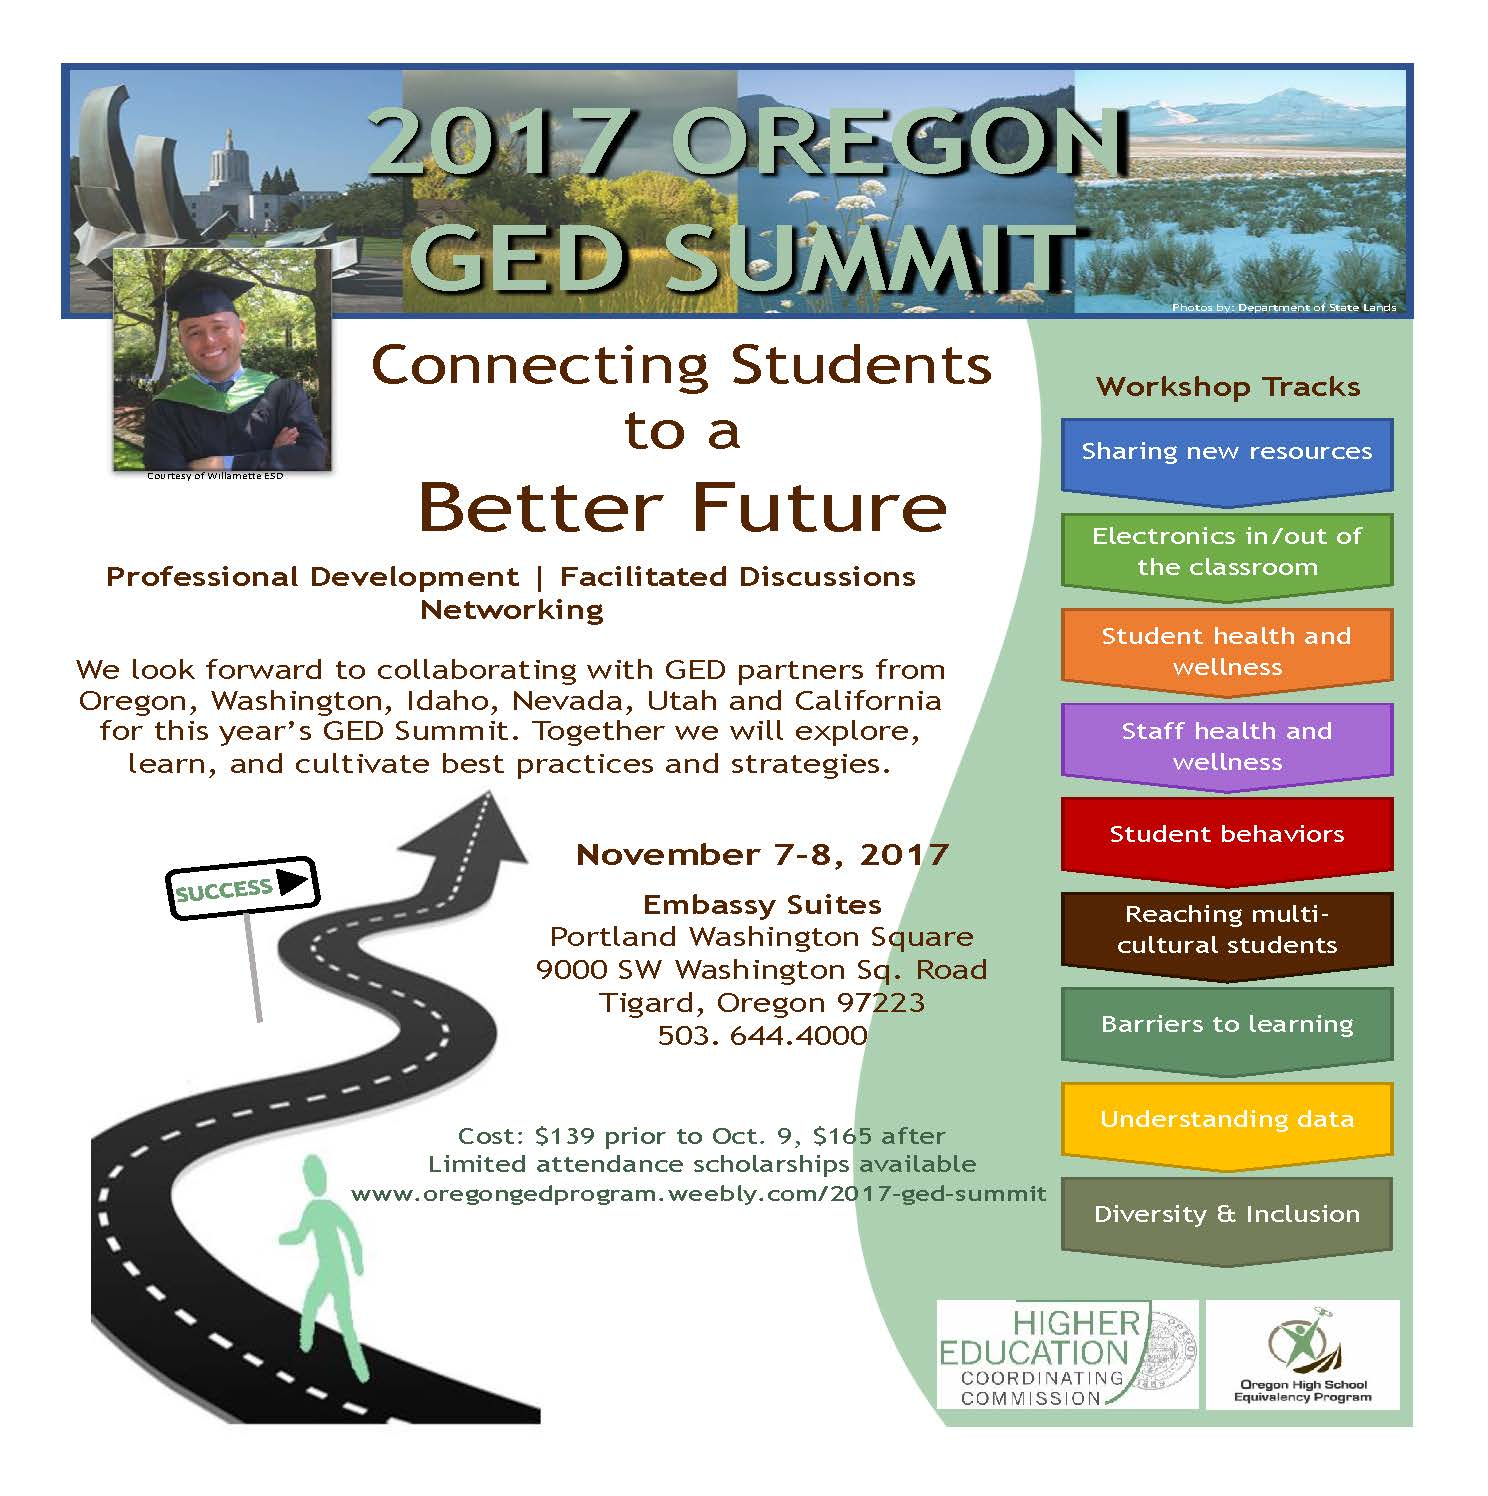 2017 Oregon GED Summit